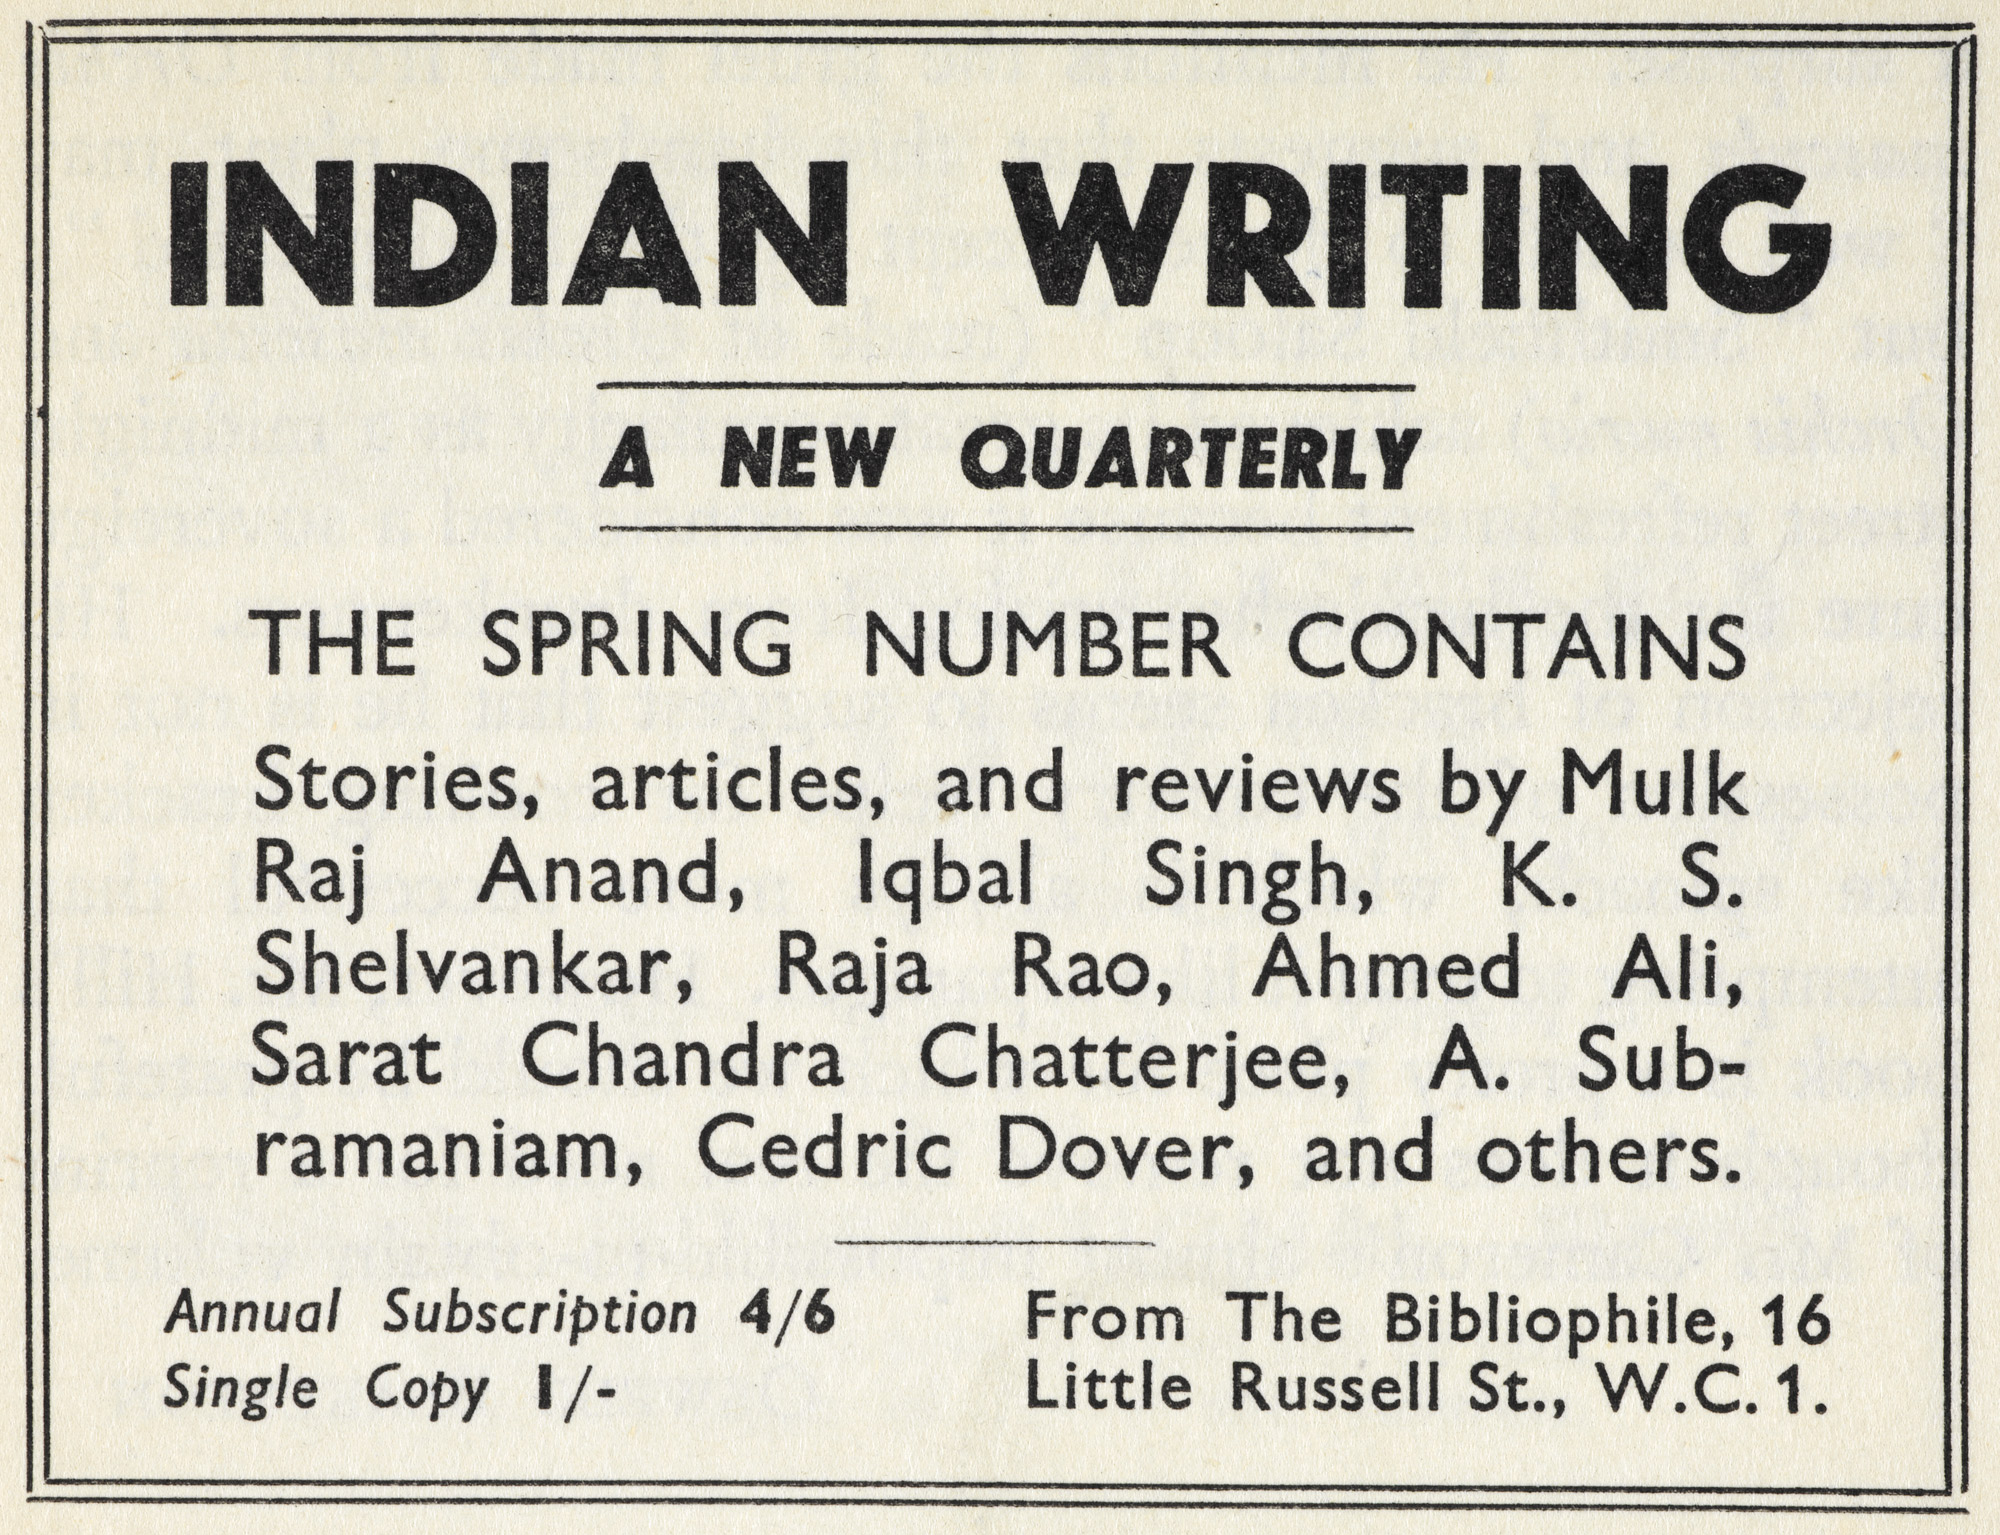 Advertisement for the Indian Writing magazine